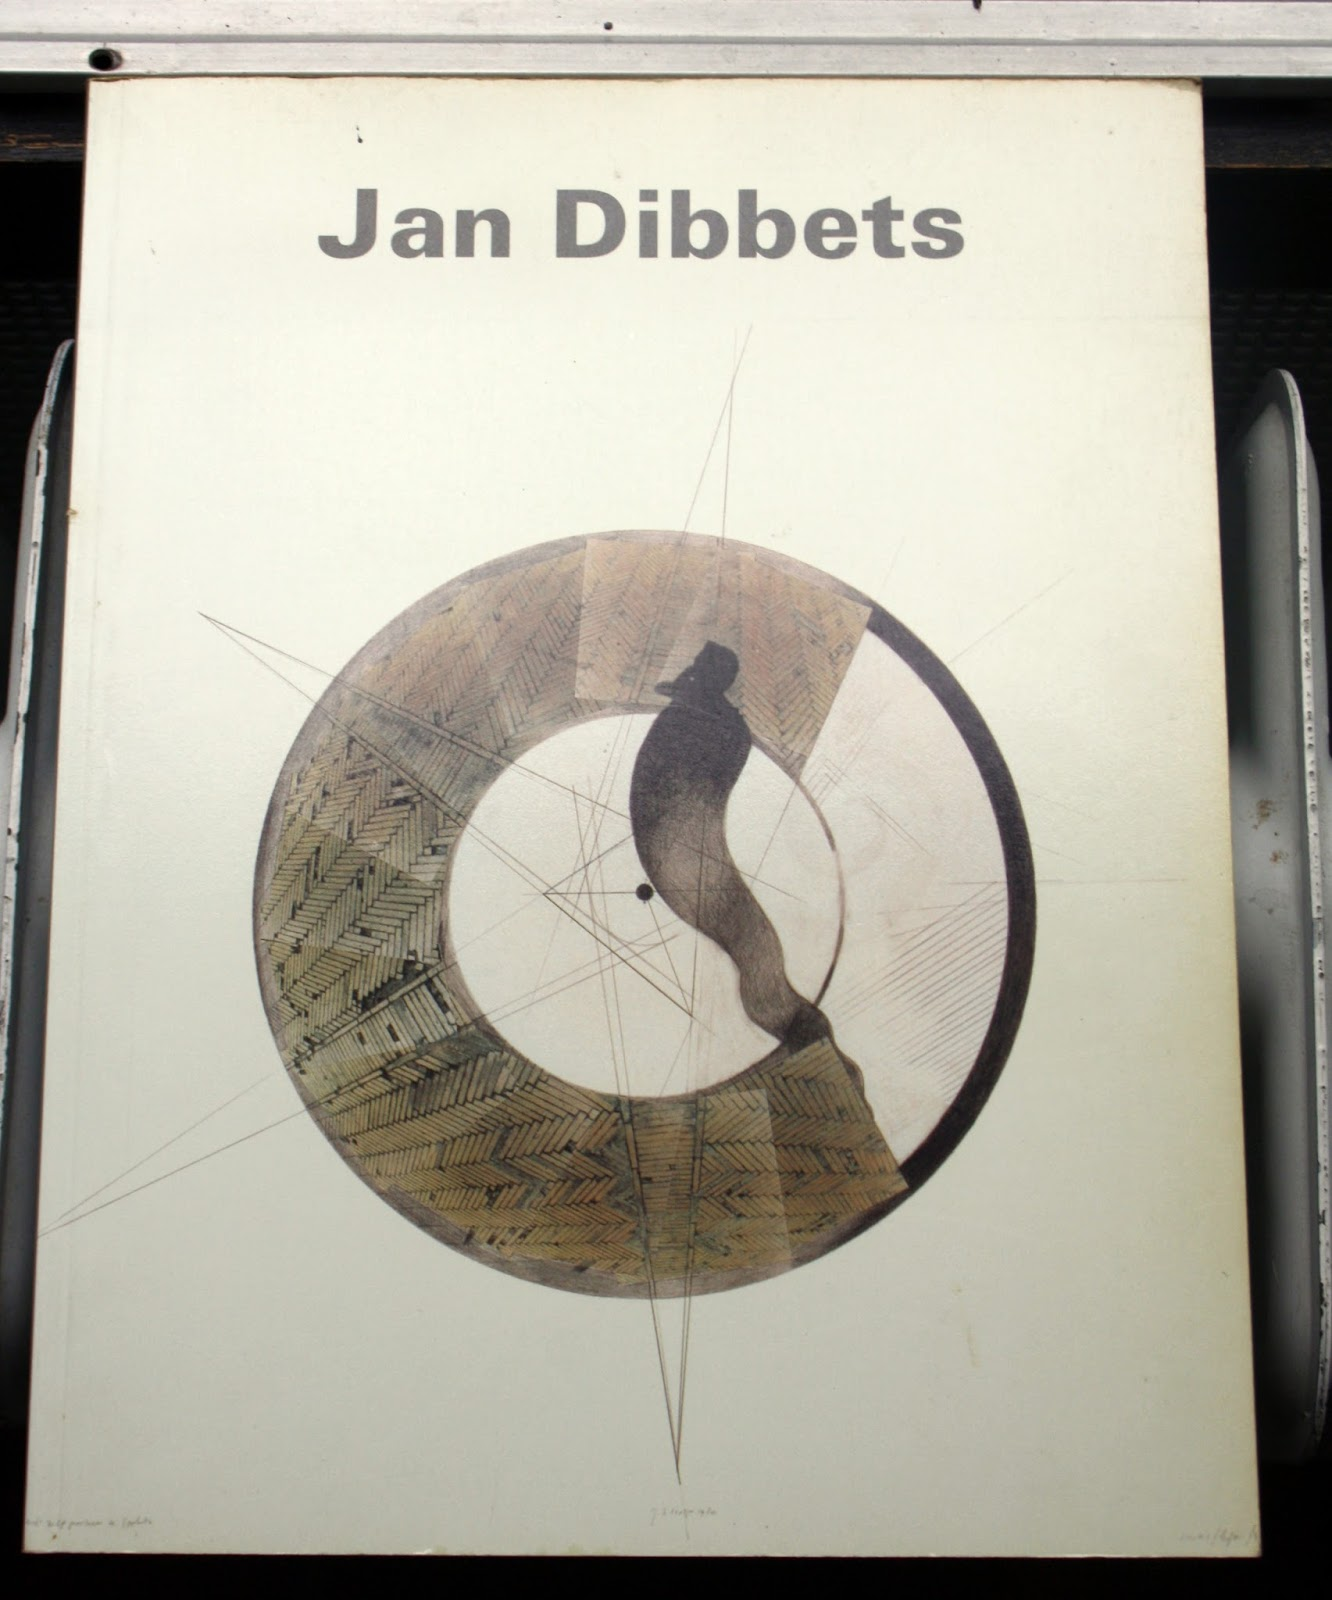 Jan Dibbets Bint Photobooks On Internet Views And Reviews Beautiful